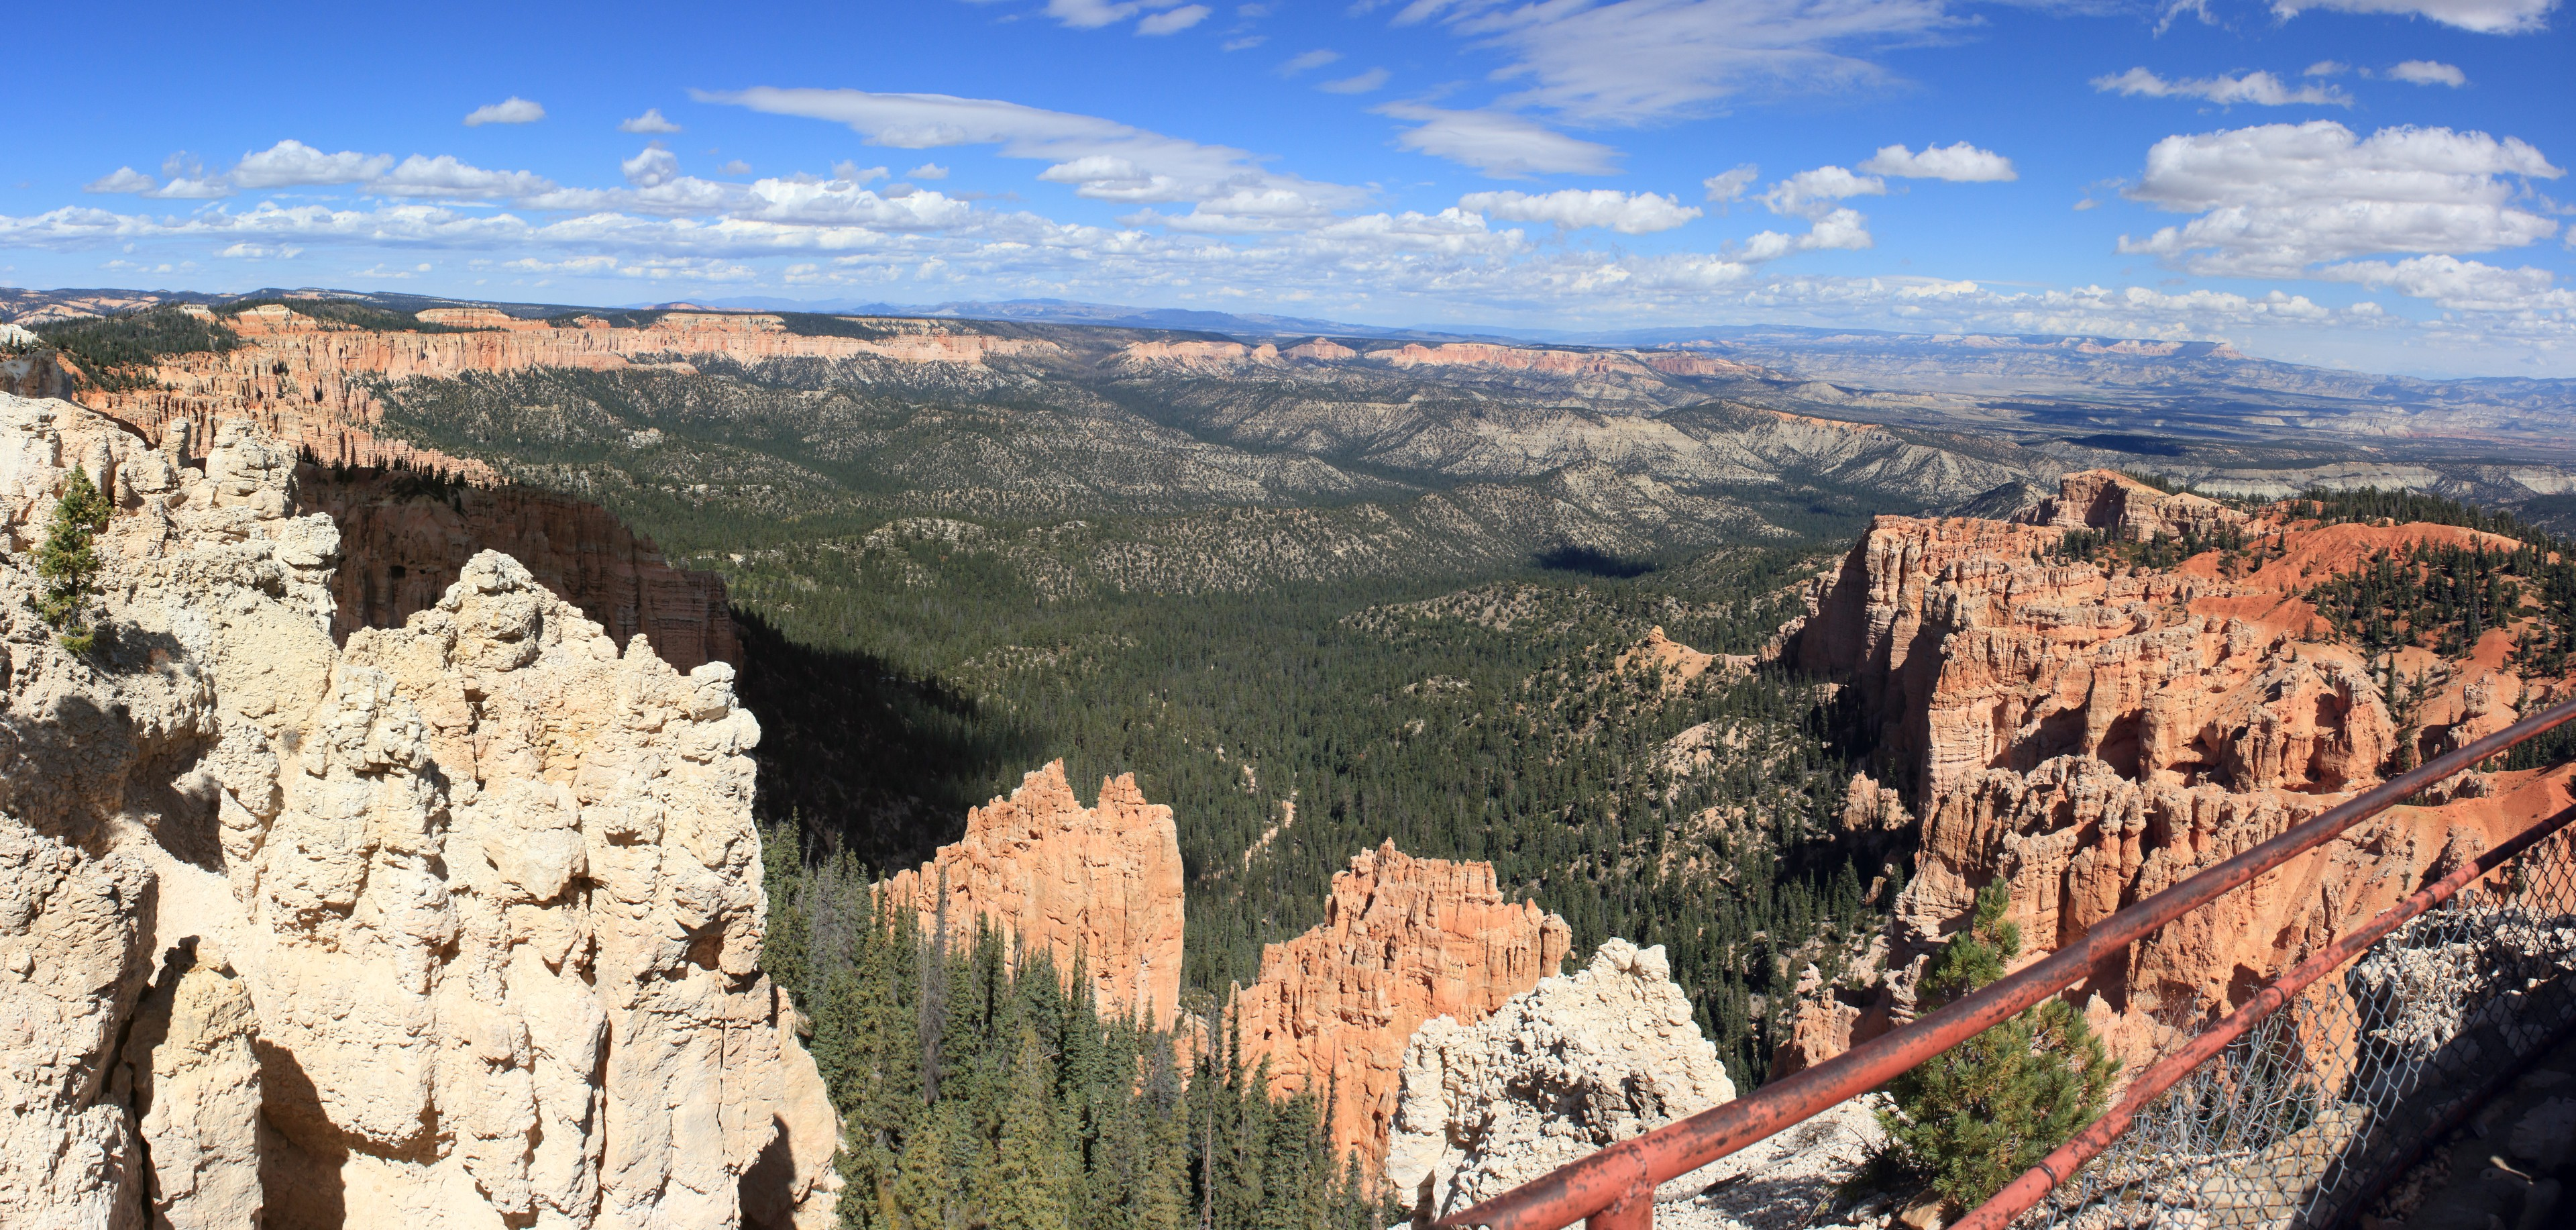 Bryce - Rainbow Point. The southern most viewpoint looking back across the length of the pink cliffs.